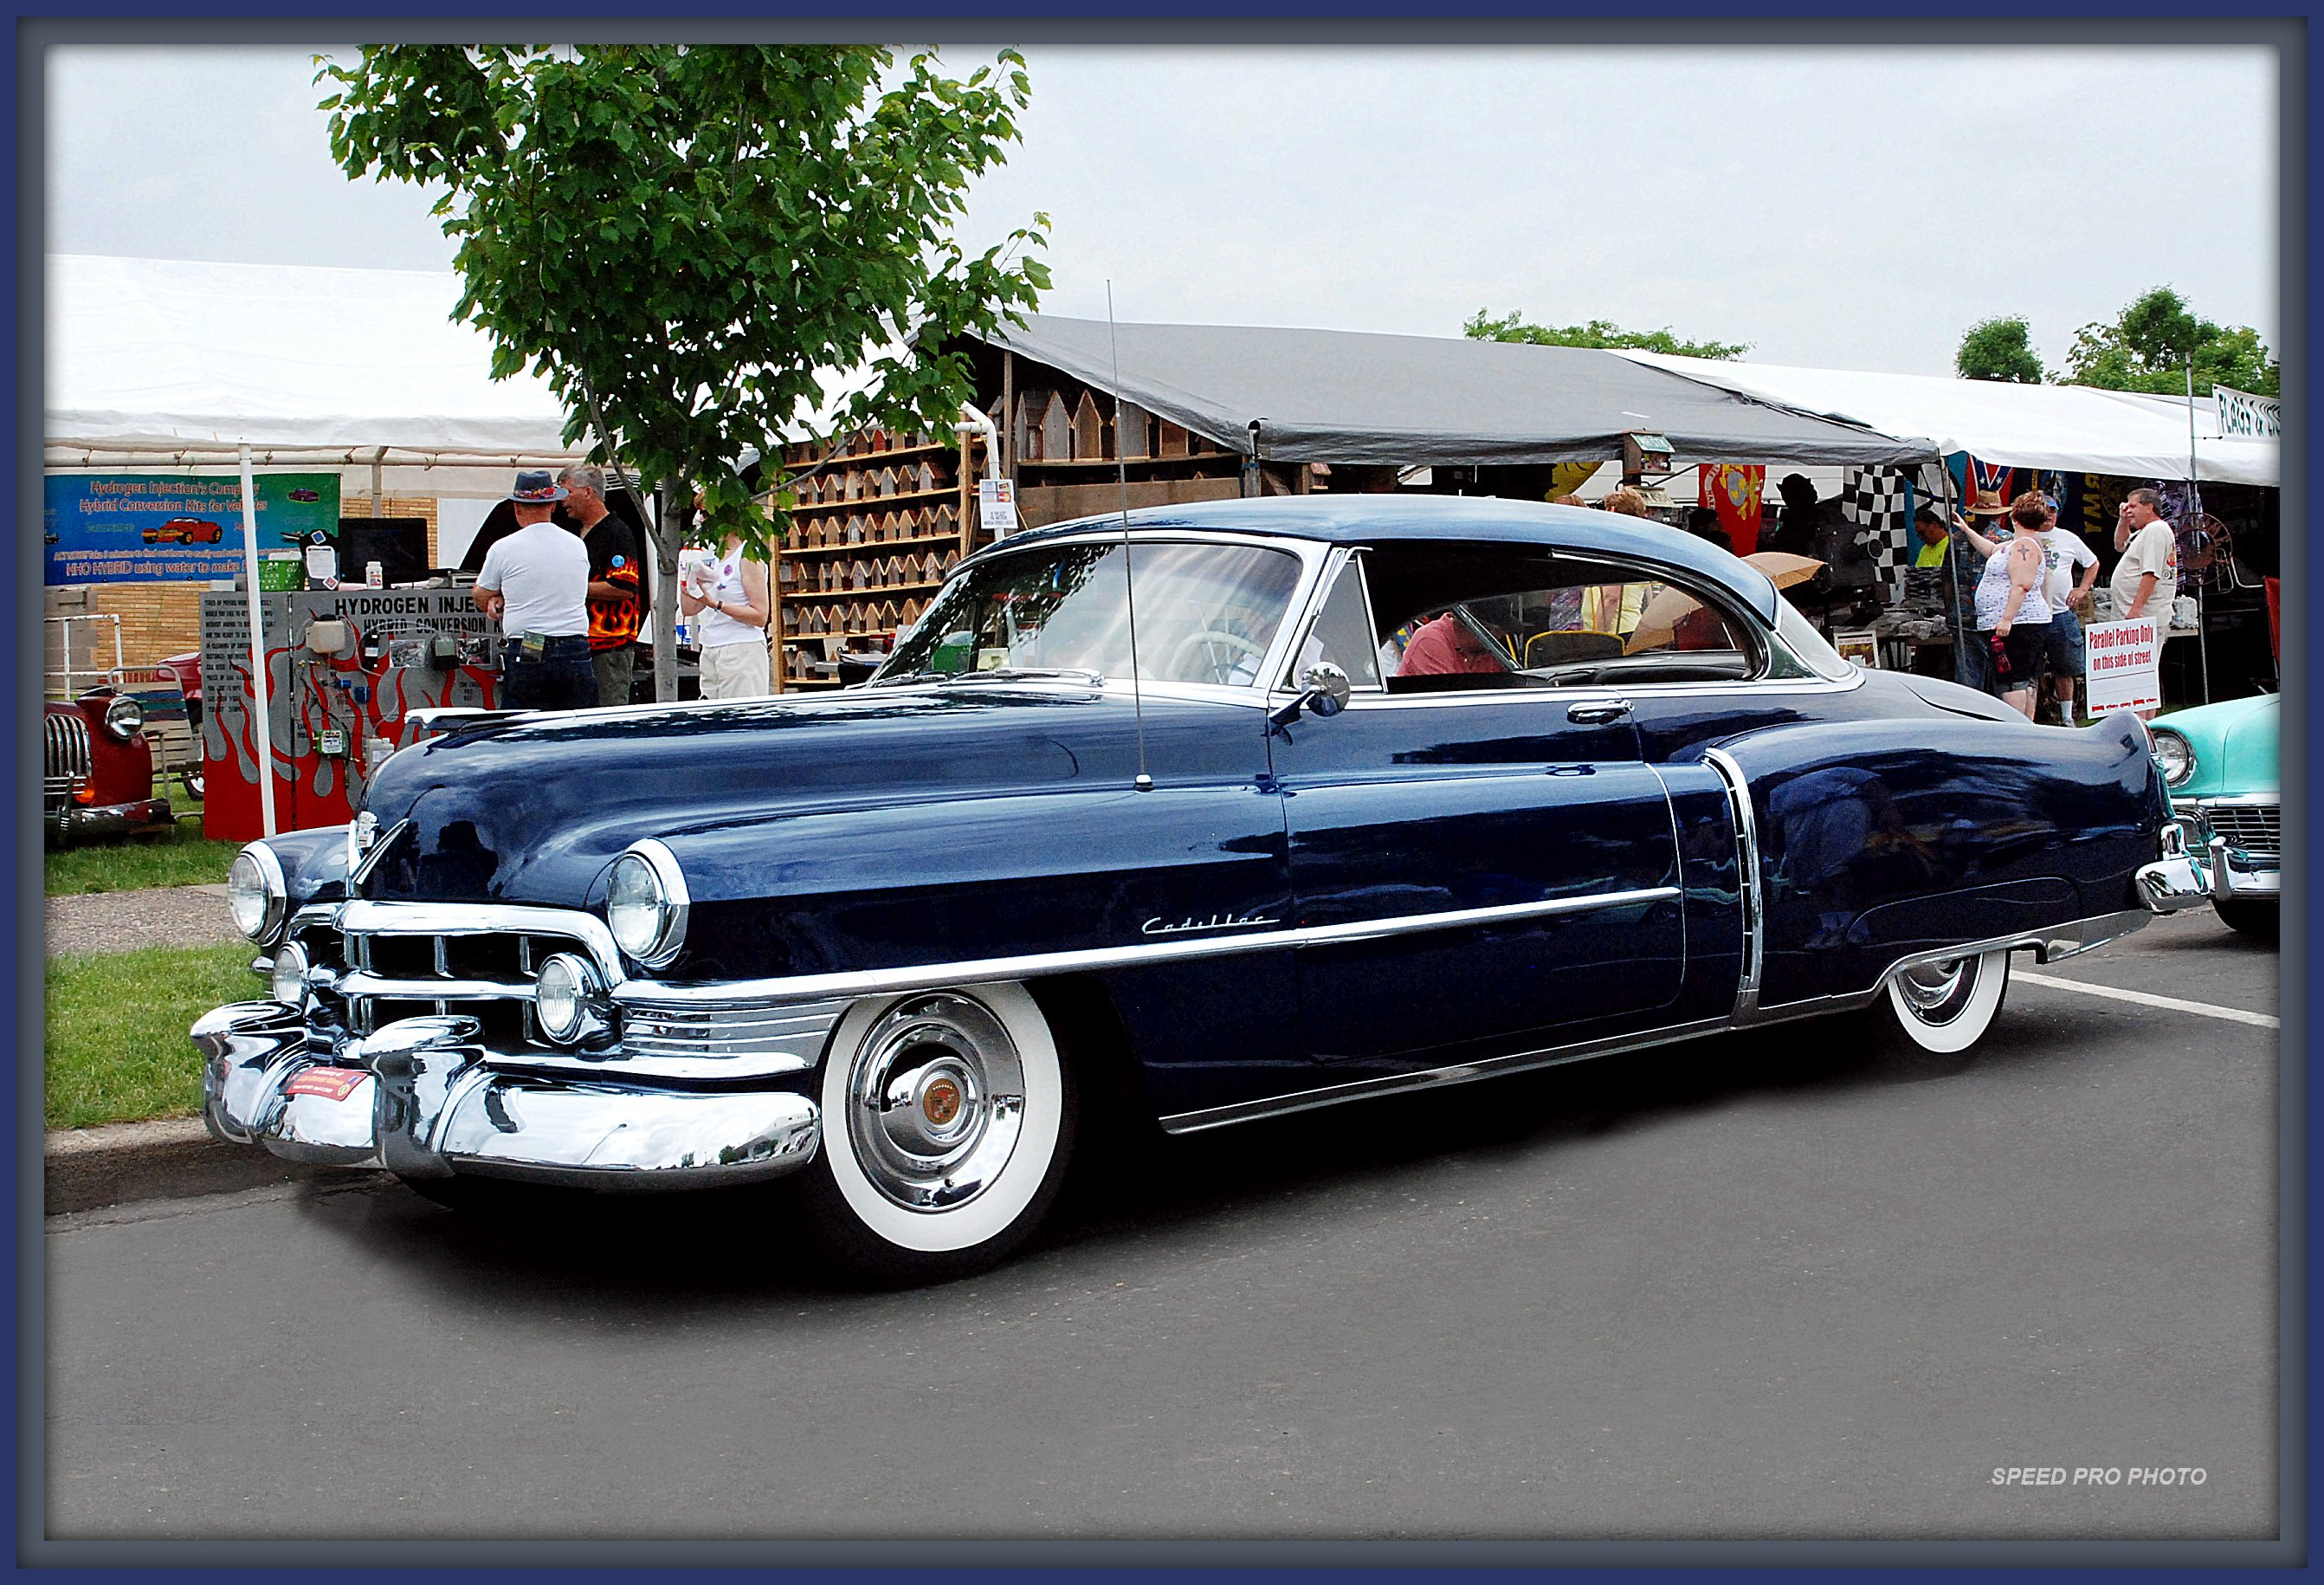 File:1951 Cadillac Coupe.jpg - Wikimedia Commons